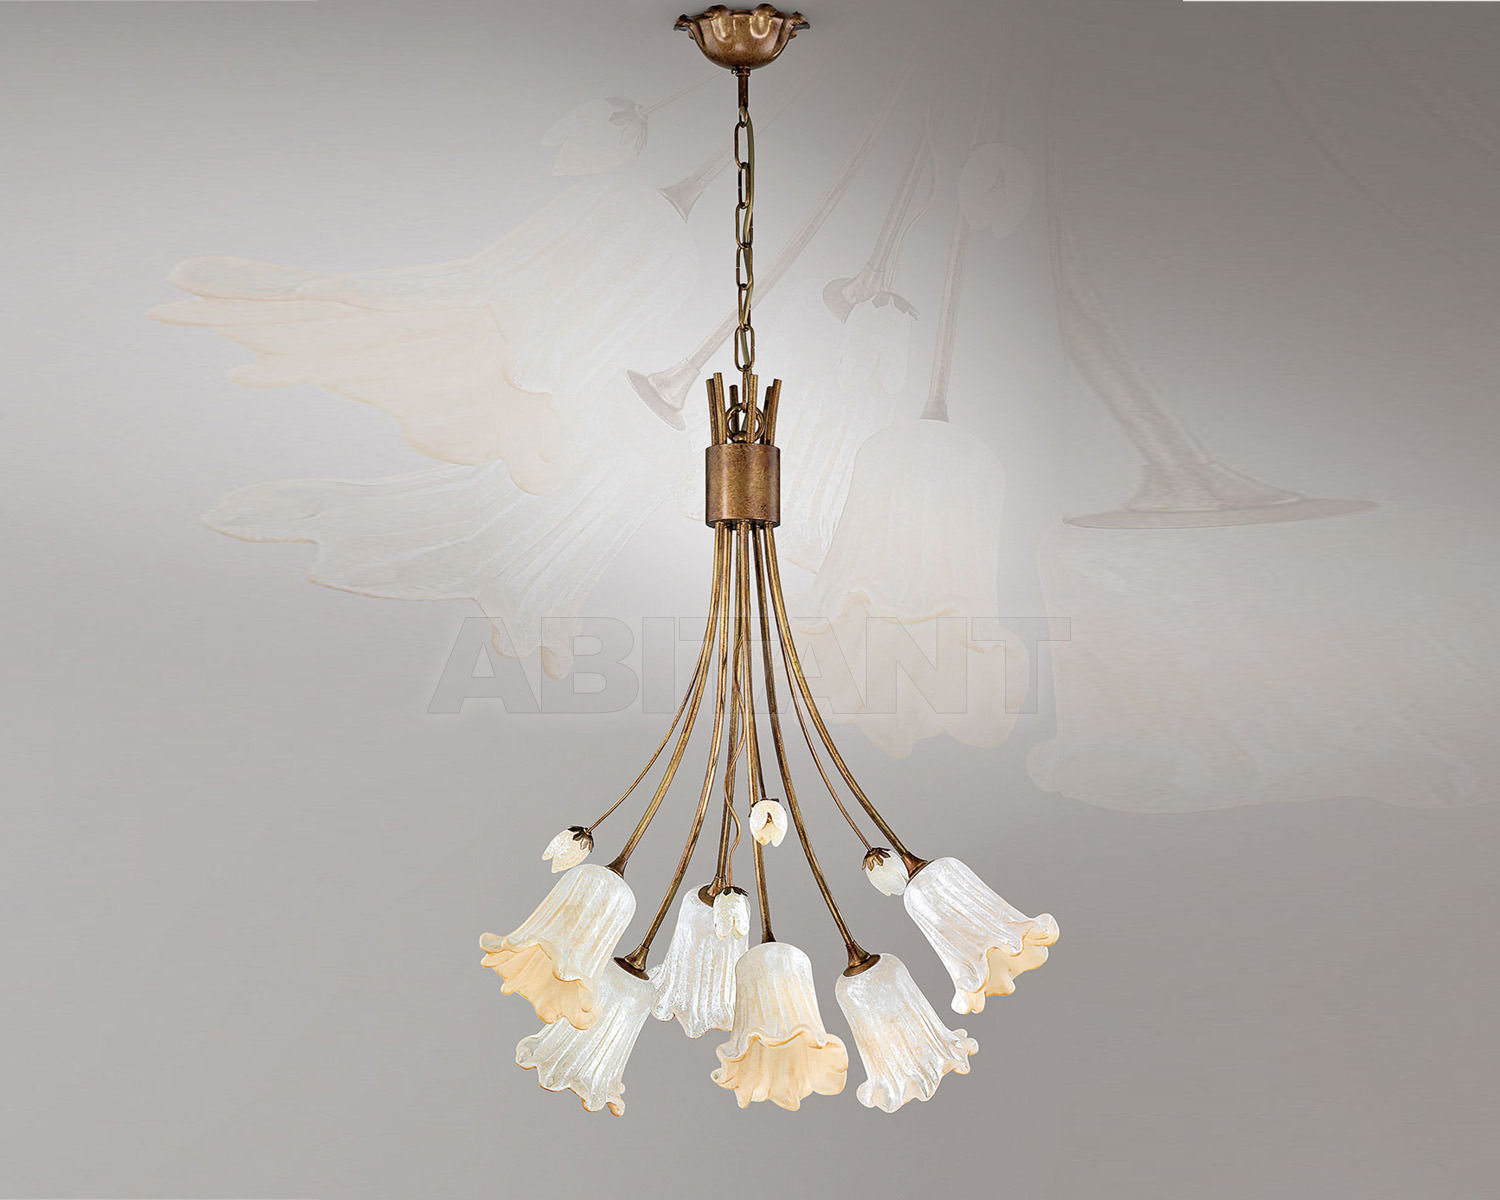 Купить Светильник LORY BR-AV Antea Luce Generale Collection 4936 1